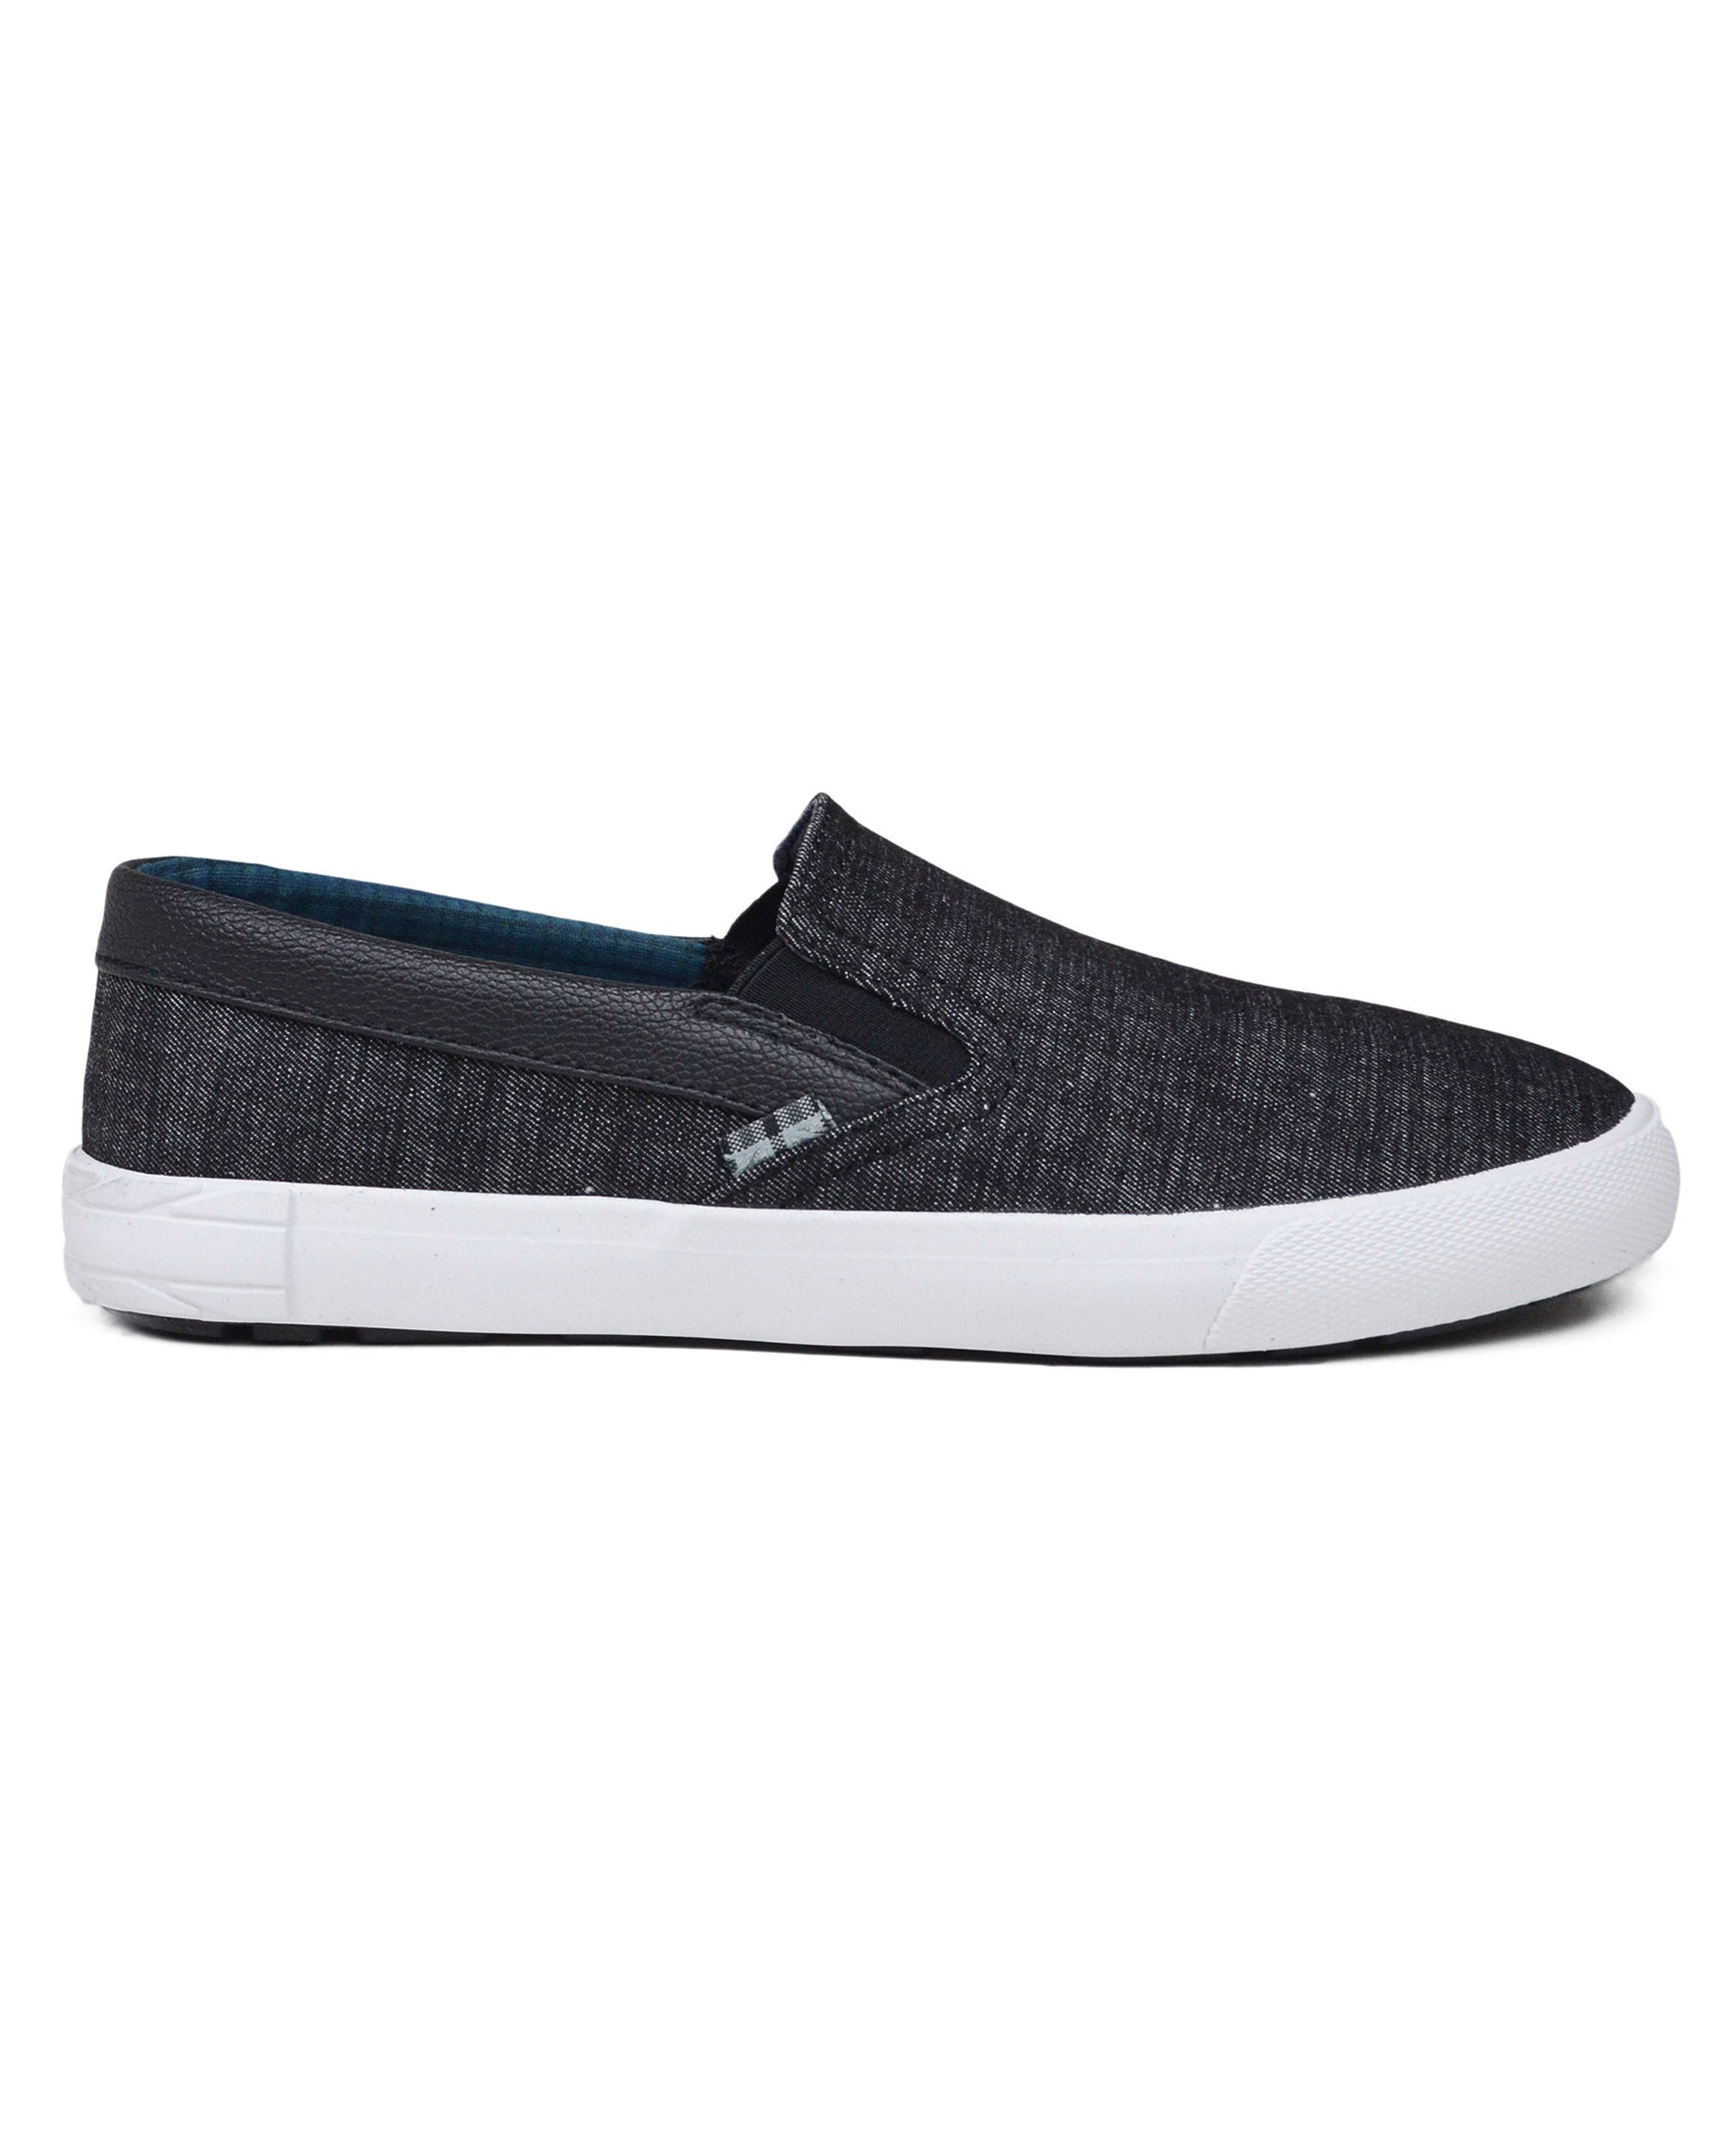 Pete Denim Slip-on Sneaker - Black